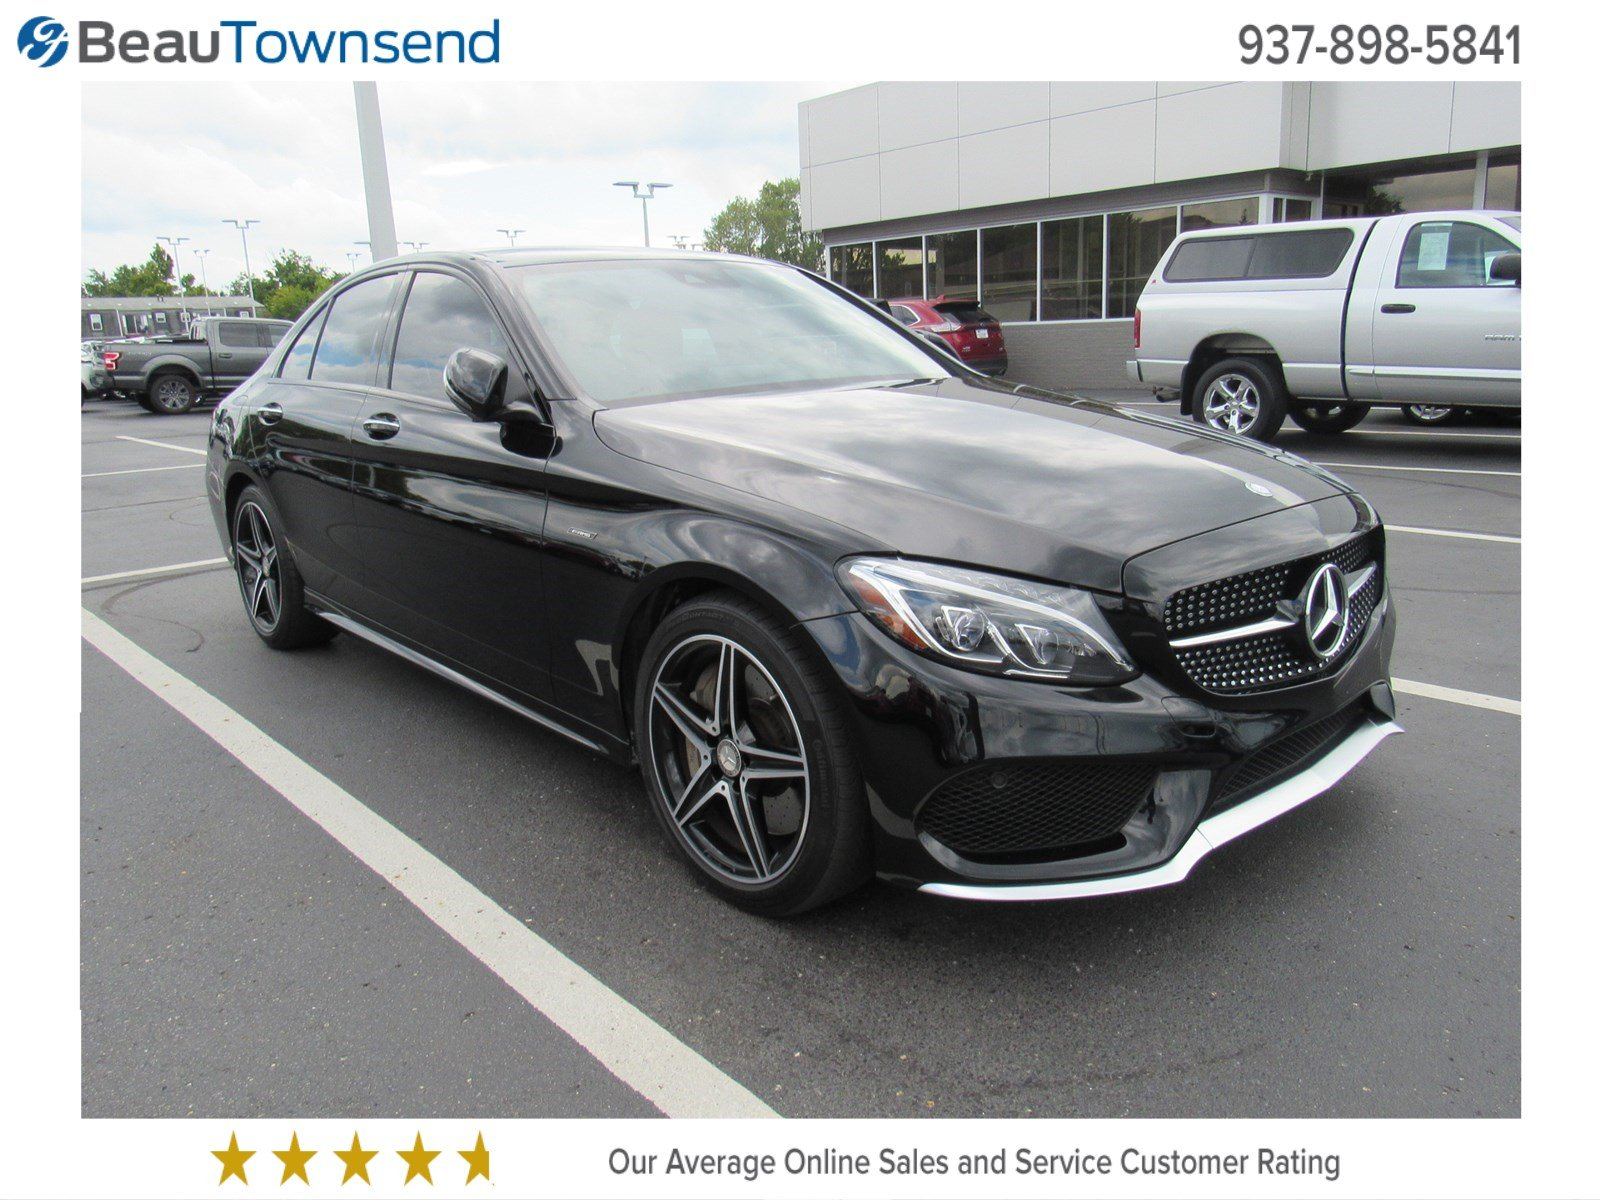 Pre Owned 2016 Mercedes Benz C Class C 450 AMG 4dr Car in Vandalia